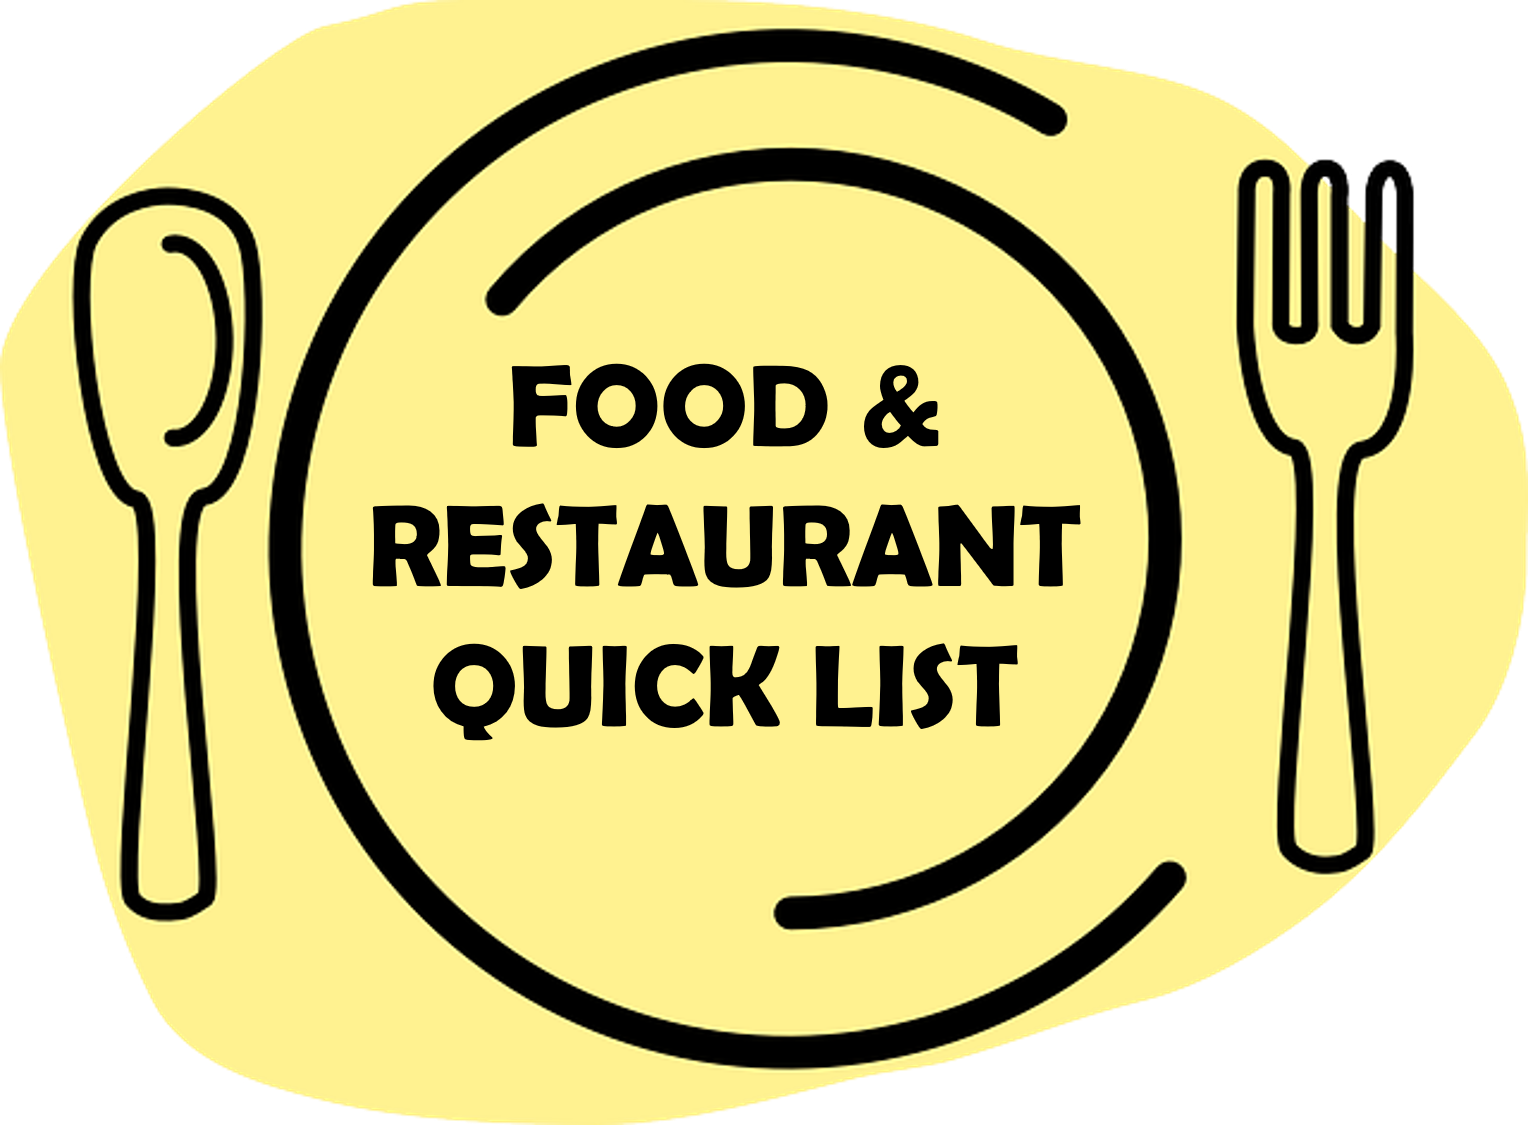 Food-Quick-List-Graphic.png